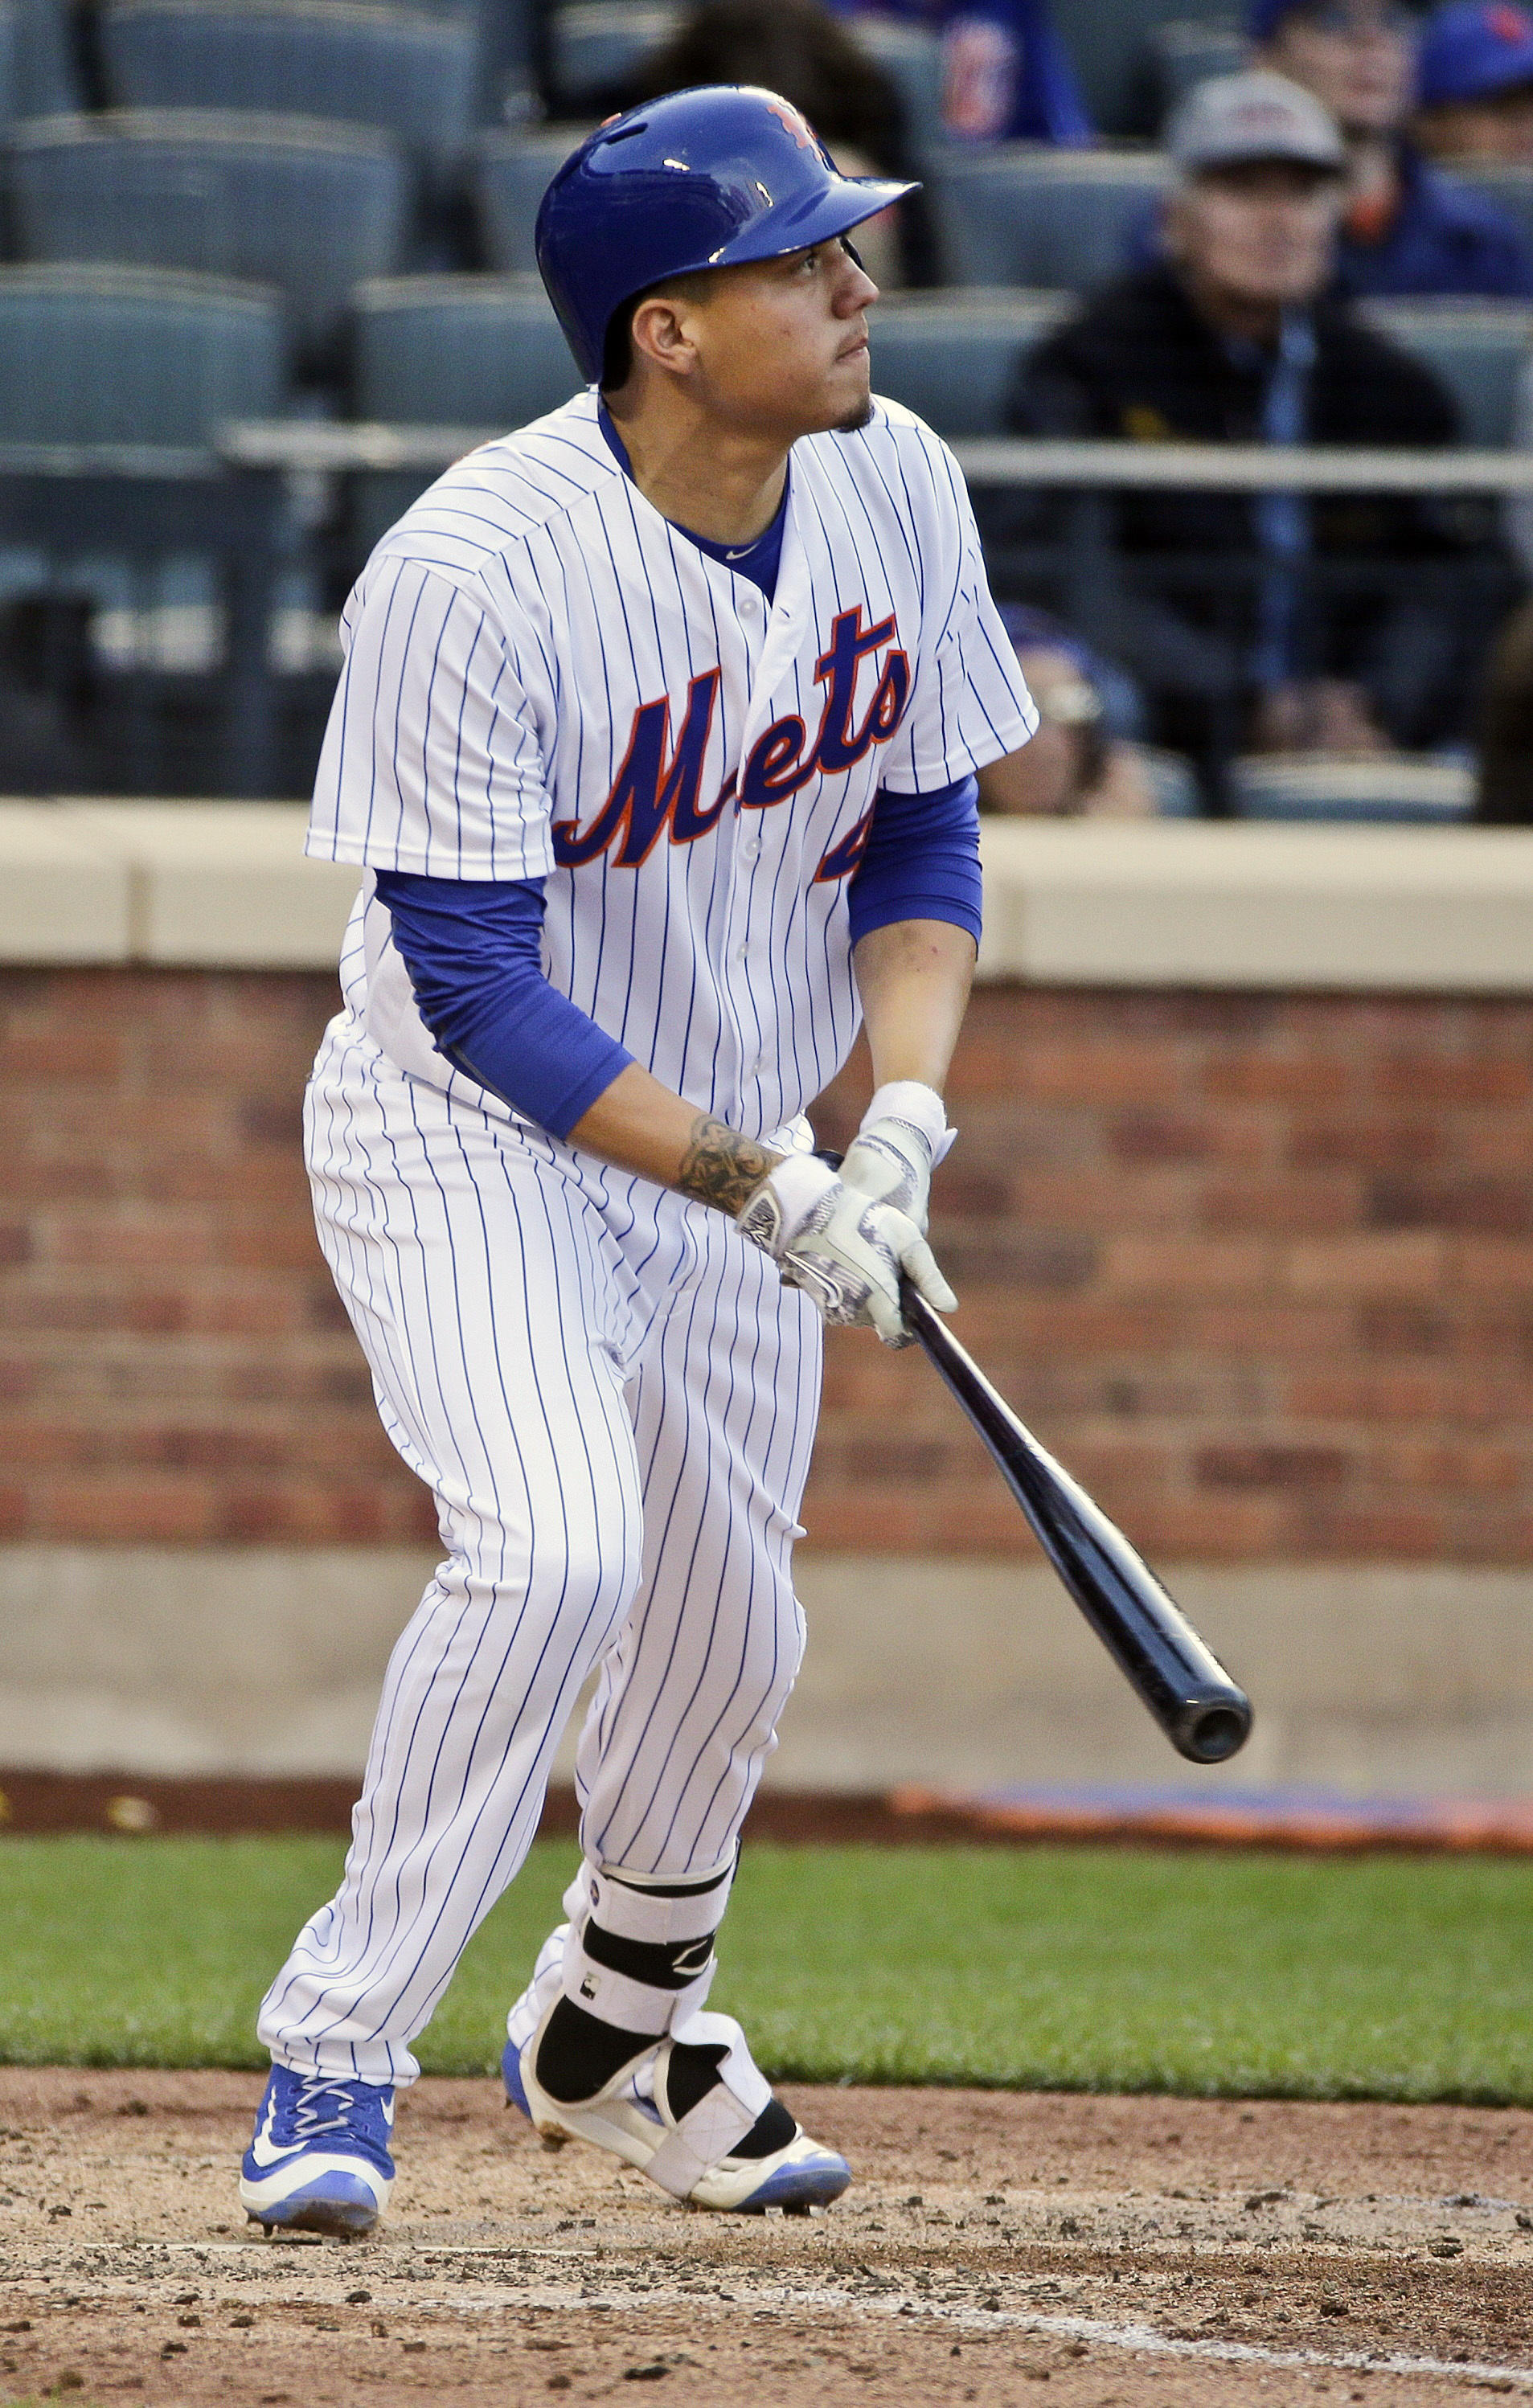 New York Mets' Wilmer Flores hits a home run during the sixth inning of a baseball game against the San Francisco Giants Saturday, April 30, 2016, in New York. (AP Photo/Frank Franklin II)